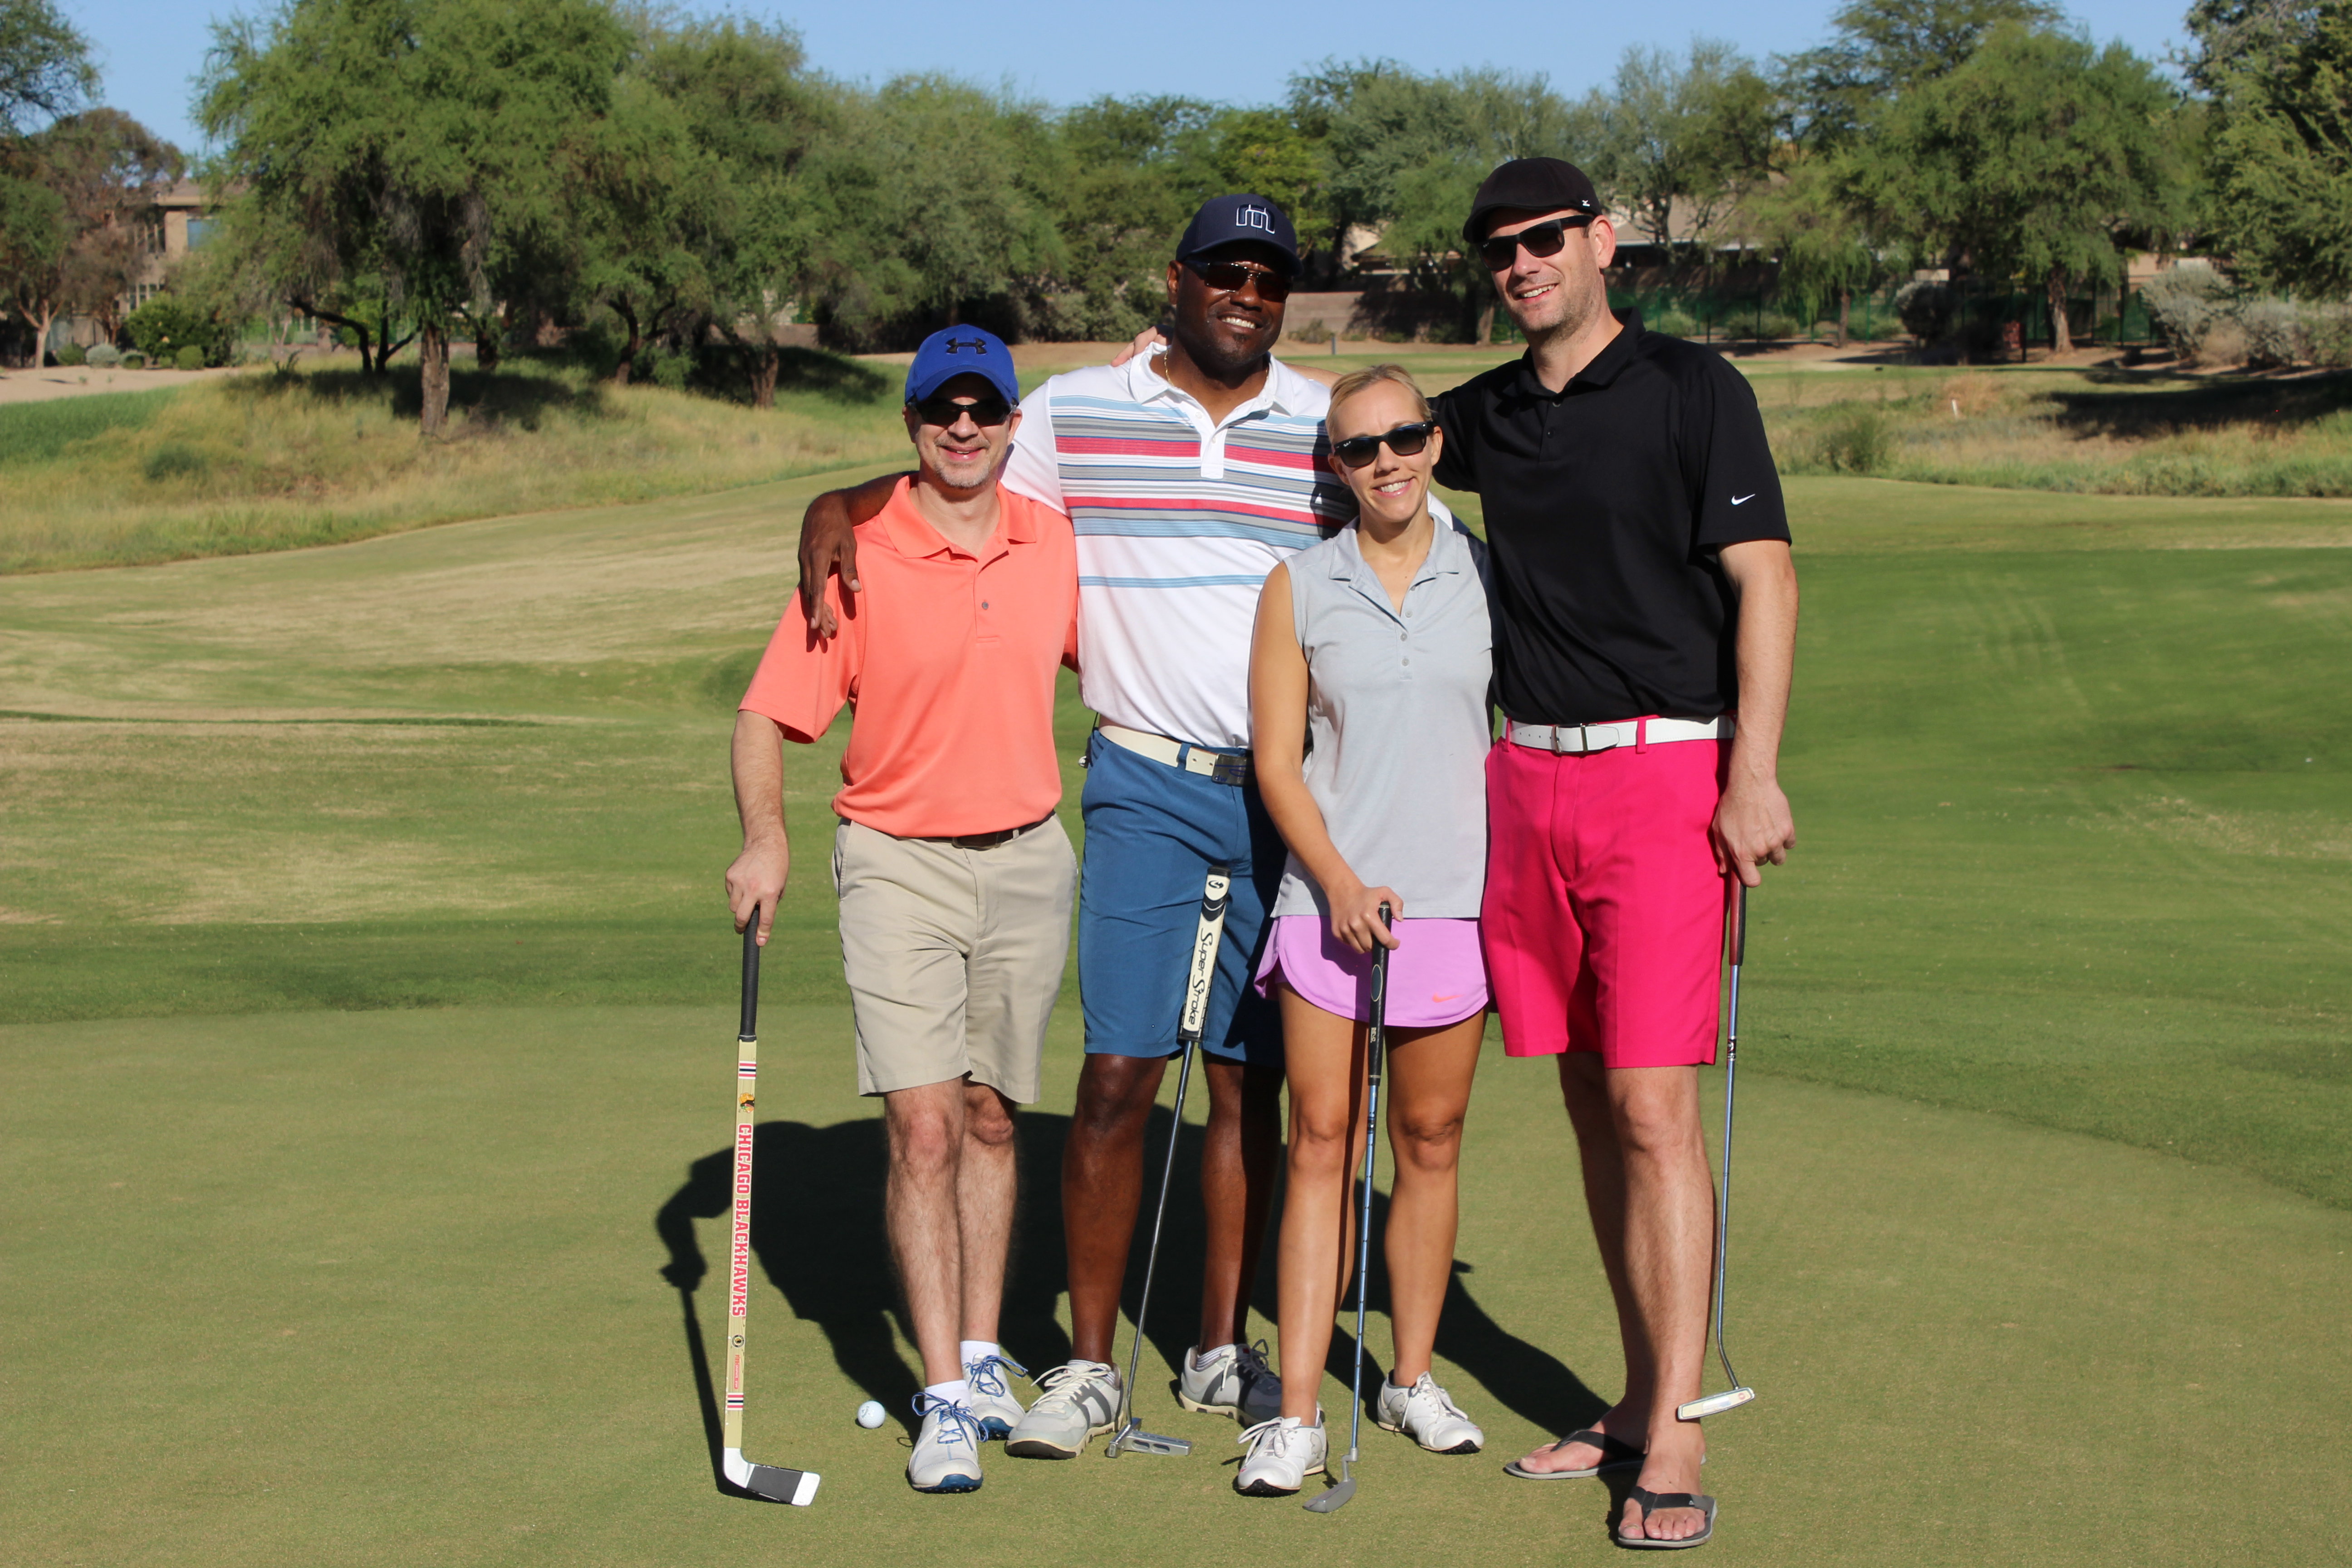 Fat Guys In Shorts Golf Tournament